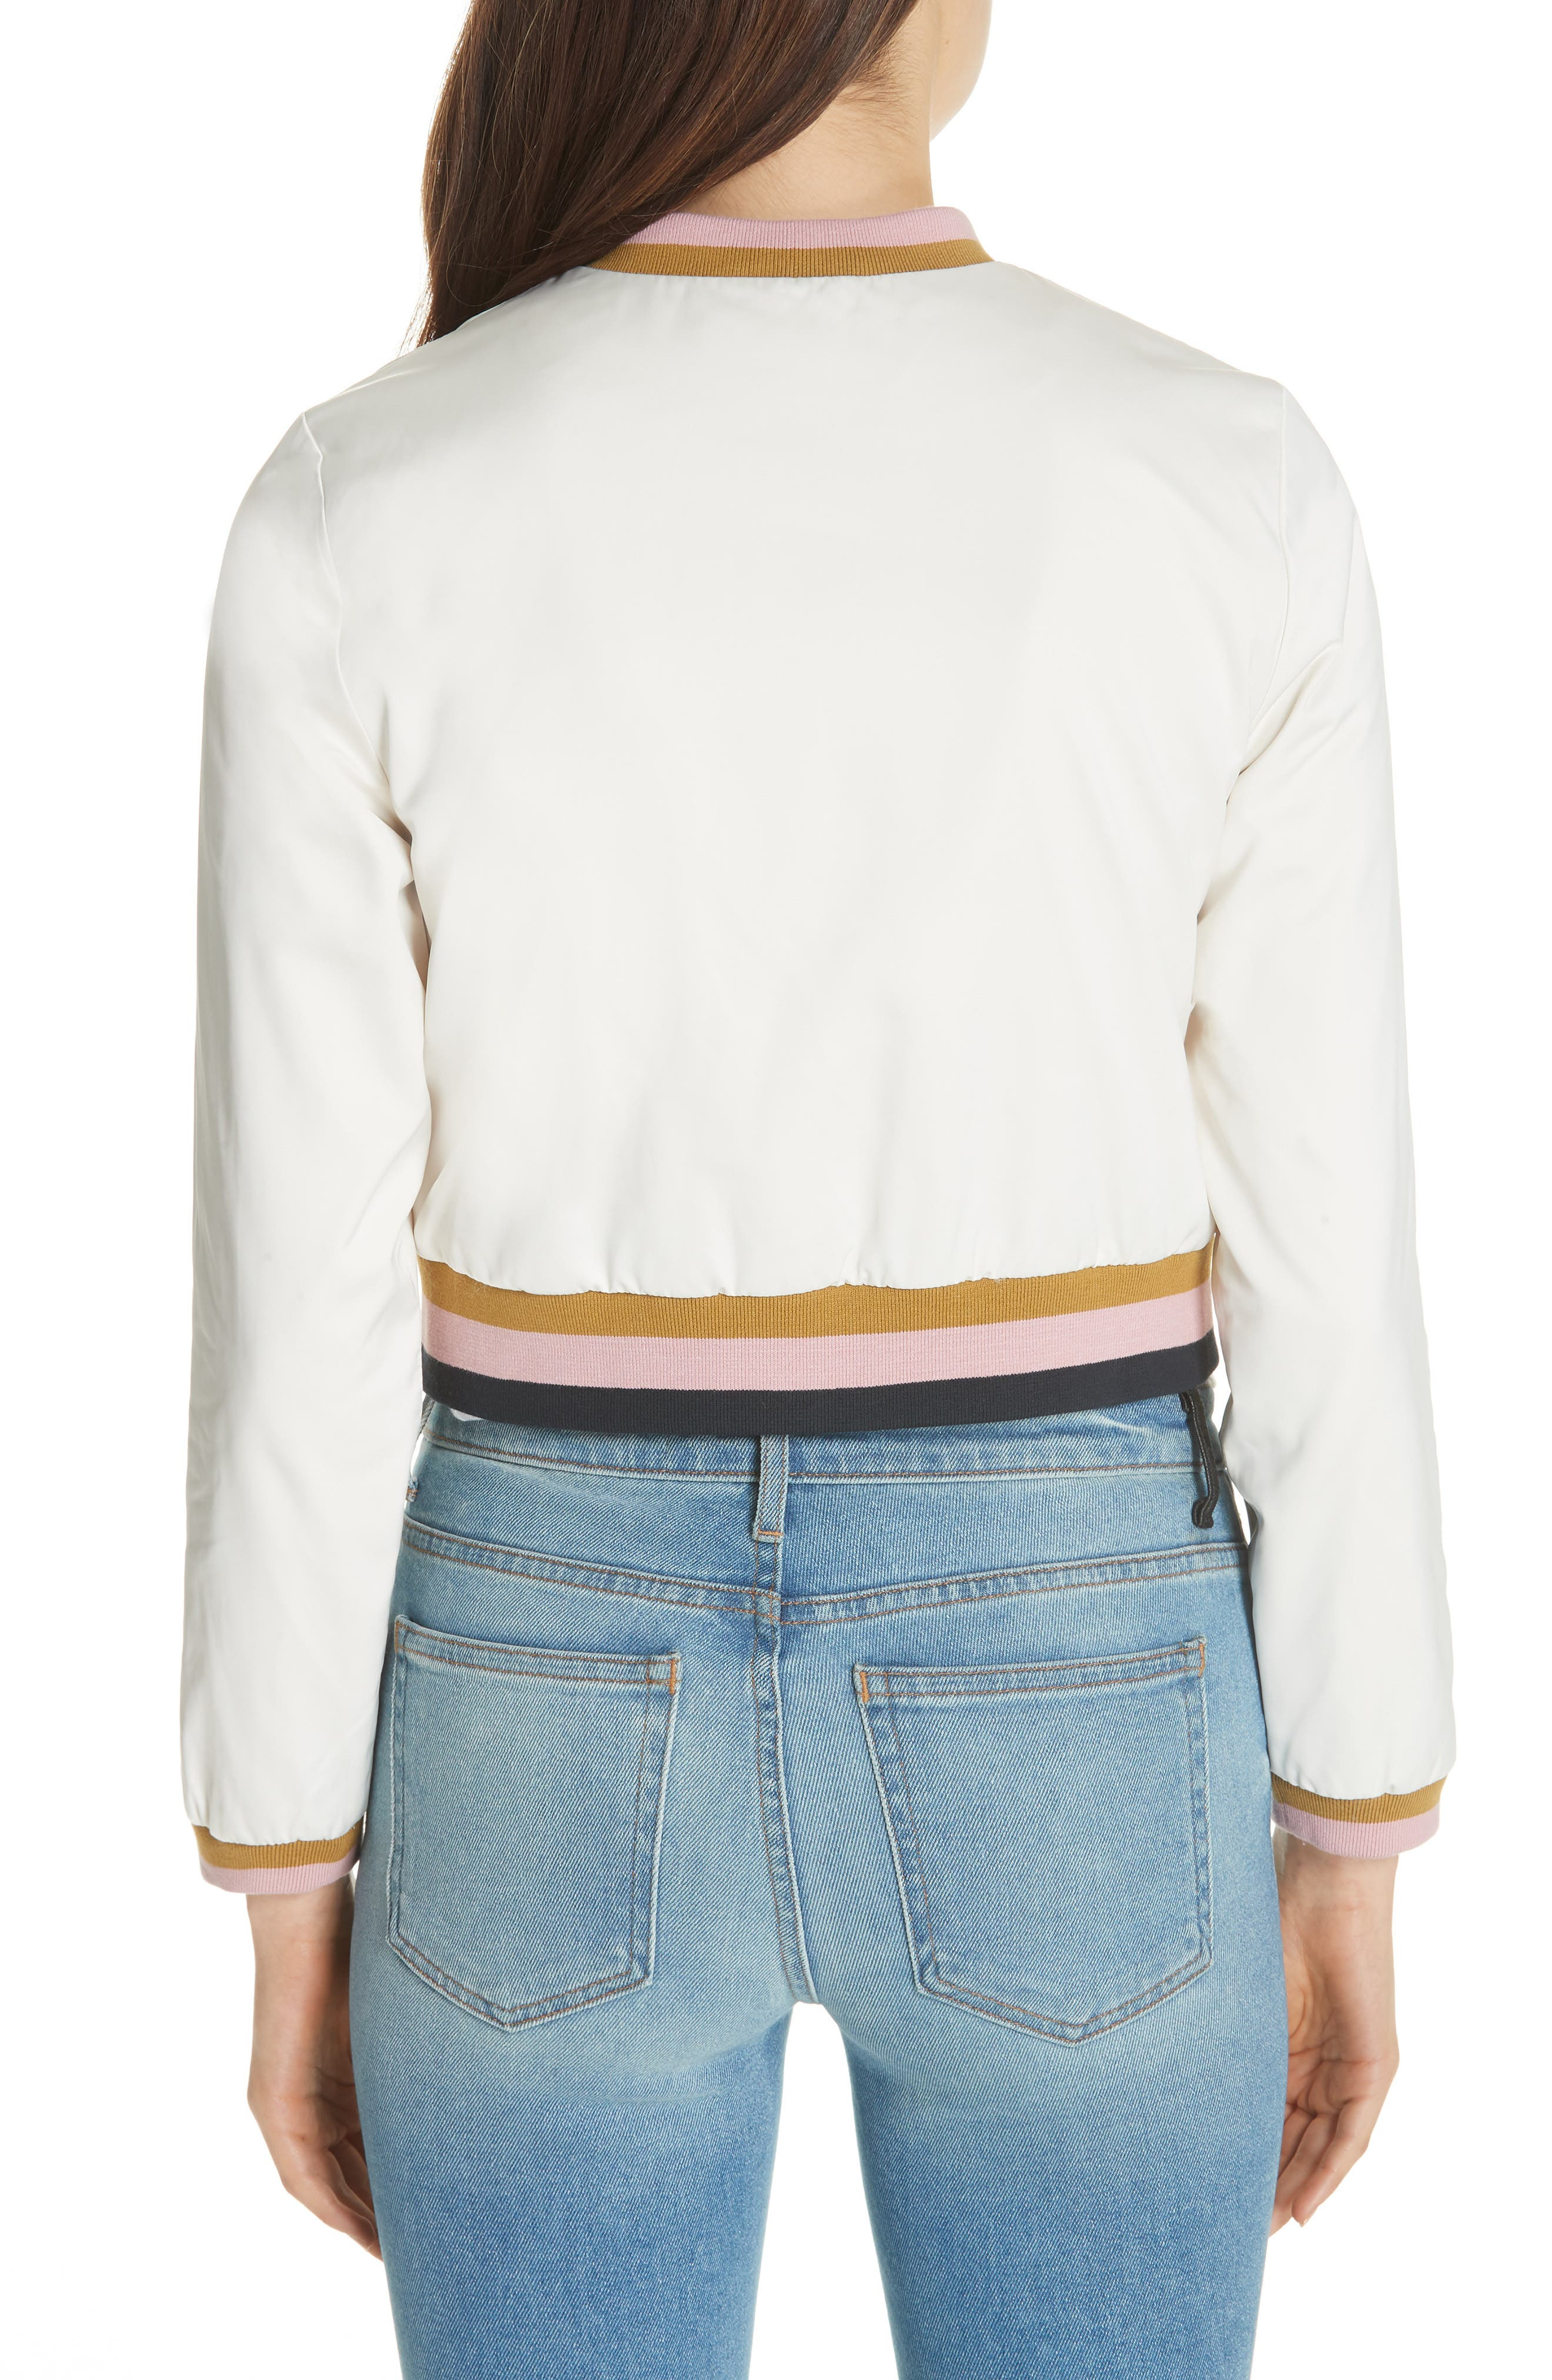 Colour by Numbers Bomber Jacket,                             Alternate thumbnail 2, color,                             Ivory